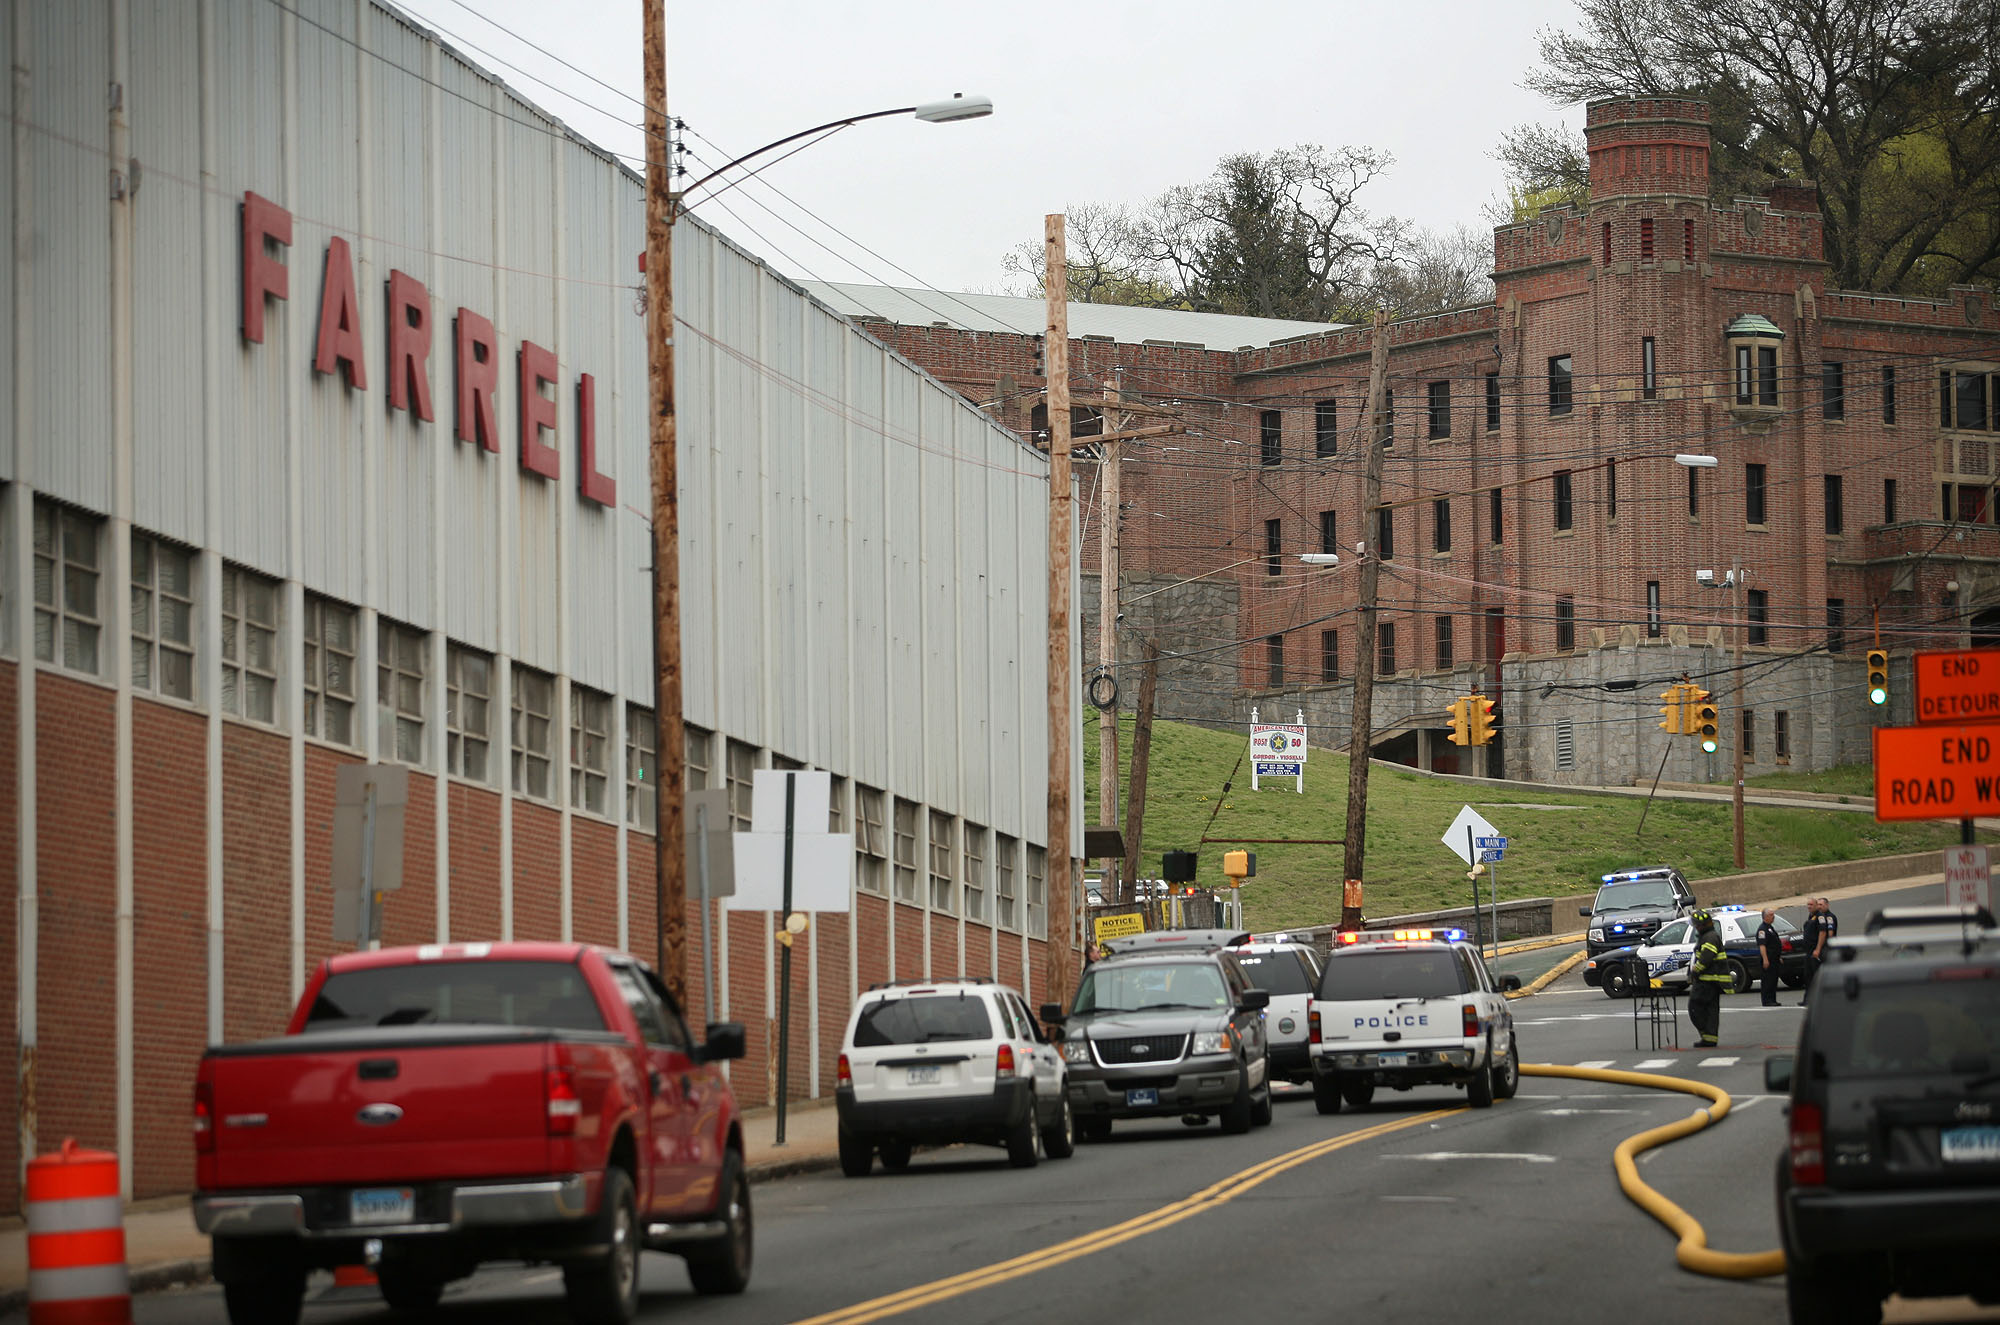 Colleges In Ct >> Ansonia's Farrel complex is sold - Connecticut Post